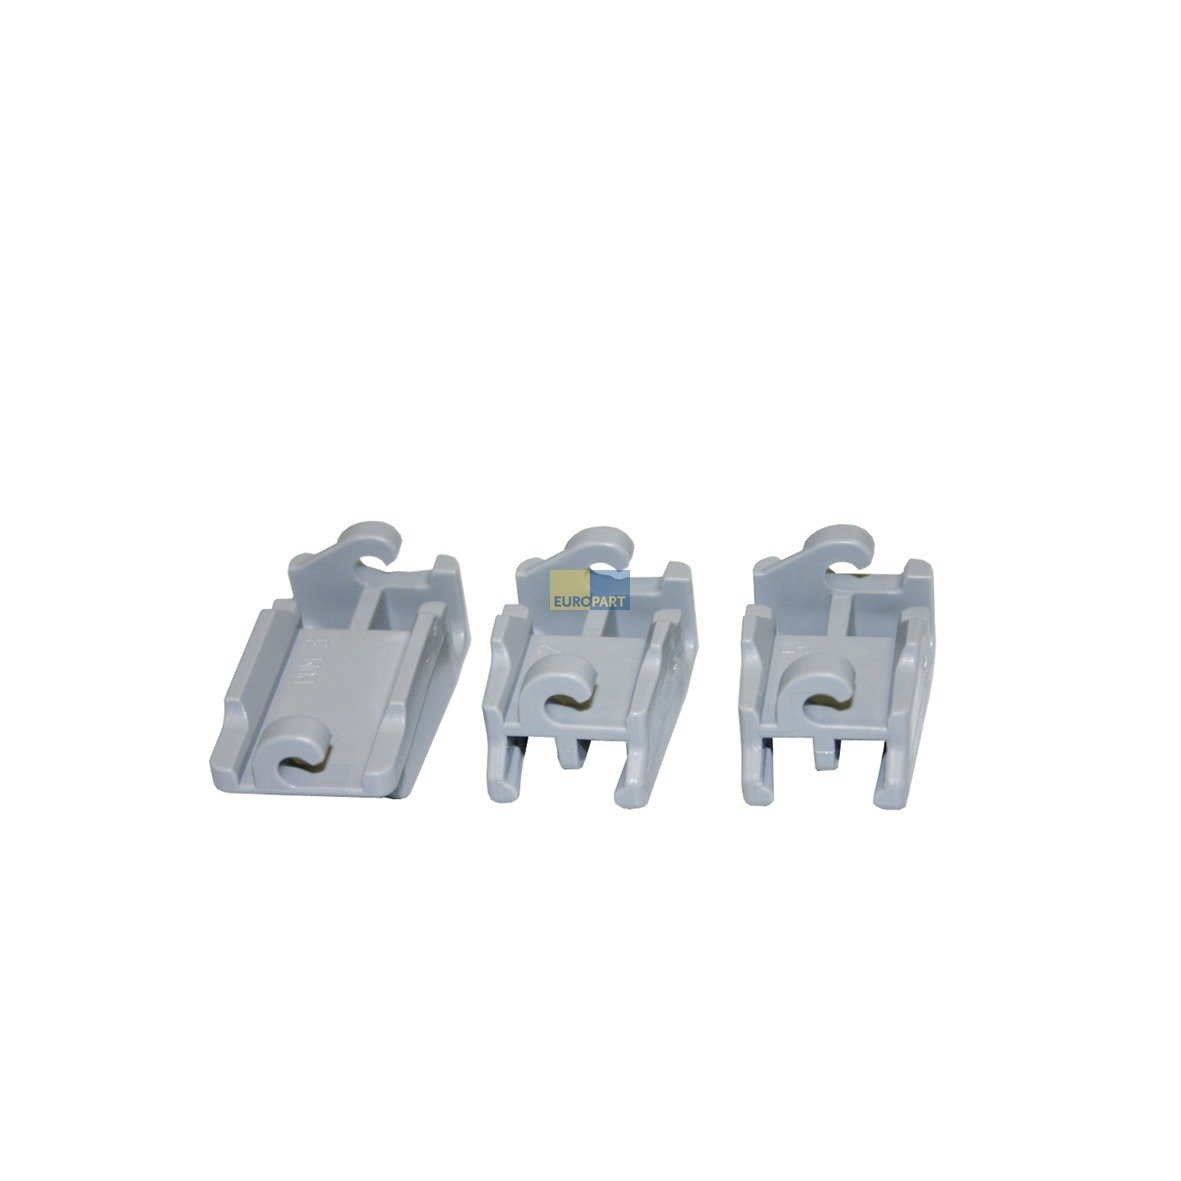 Bosch Siemens 418674 Original Set Bearing CLAMP BRACKET Klappstachelreihe Top Rack Dishwasher Dishwasher Dishwasher Suitable Also Source 02928612 BSH-Gruppe